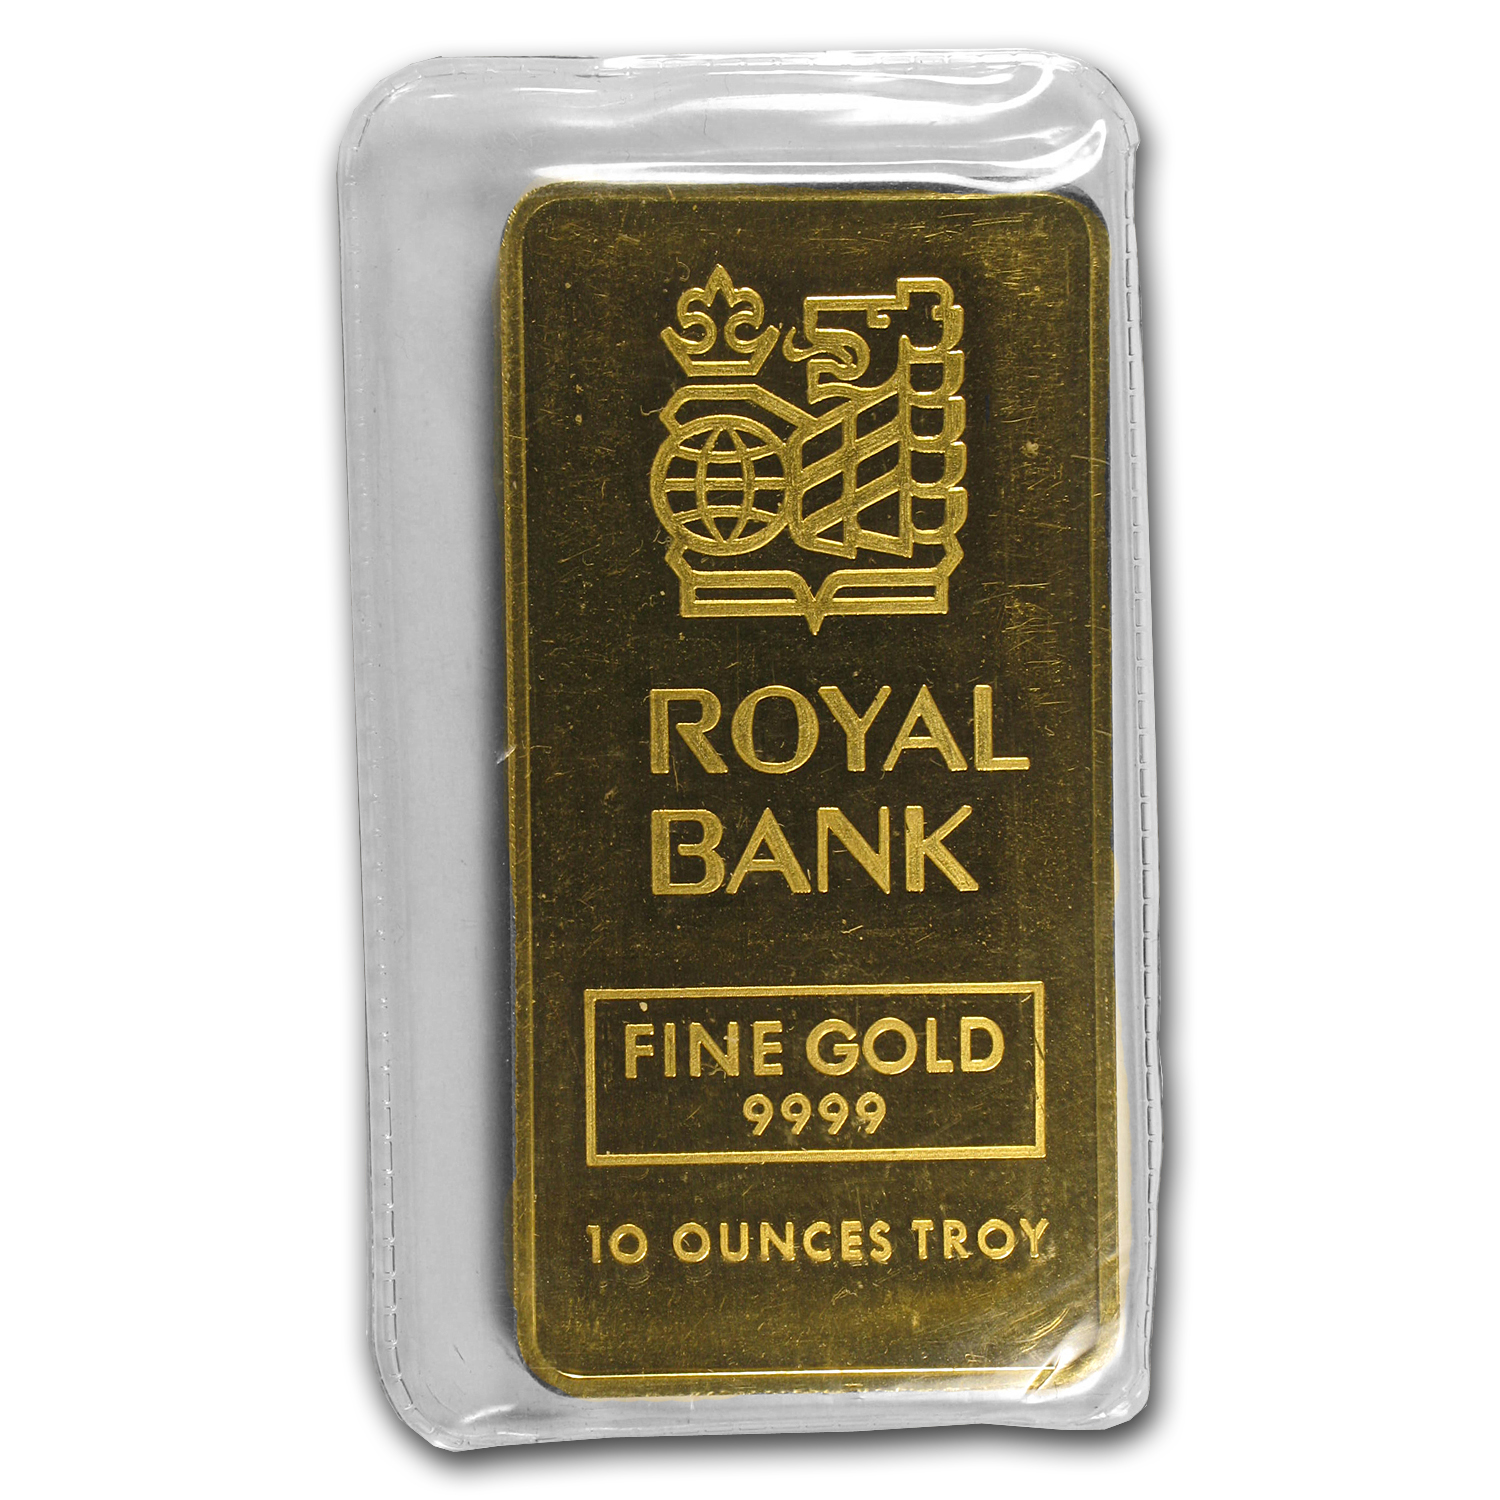 10 oz Gold Bars - Johnson Matthey (Royal Bank)